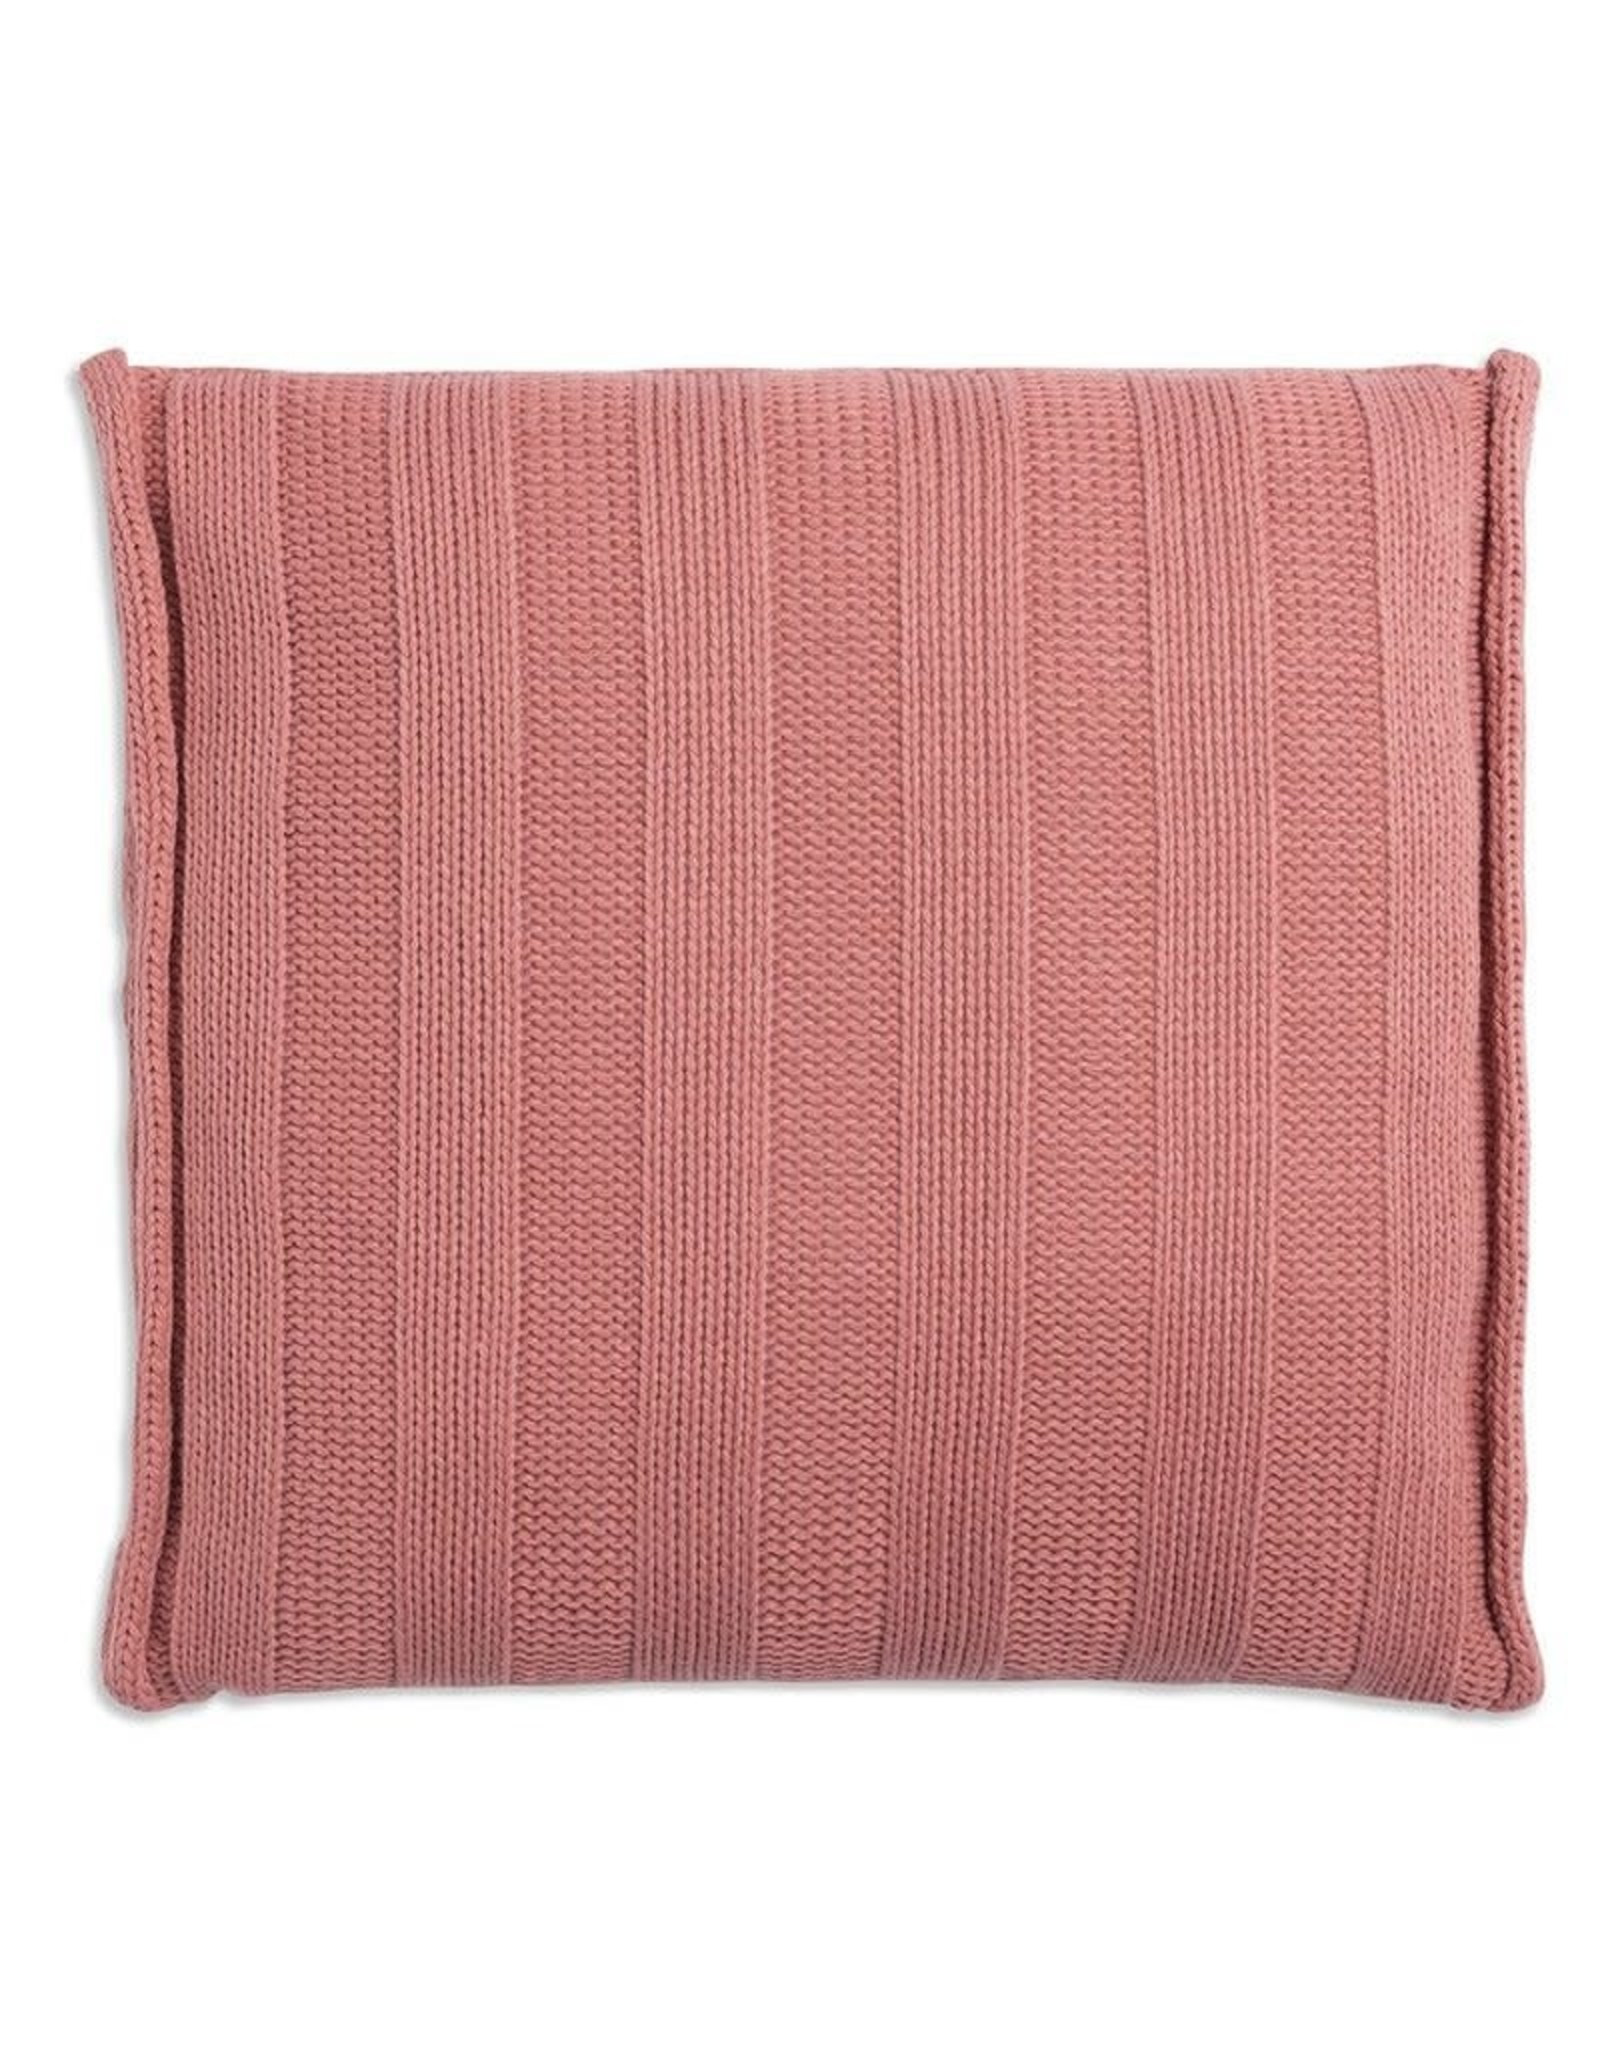 Knit Factory Knit Factory Jesse Cushion 50x50 Coral